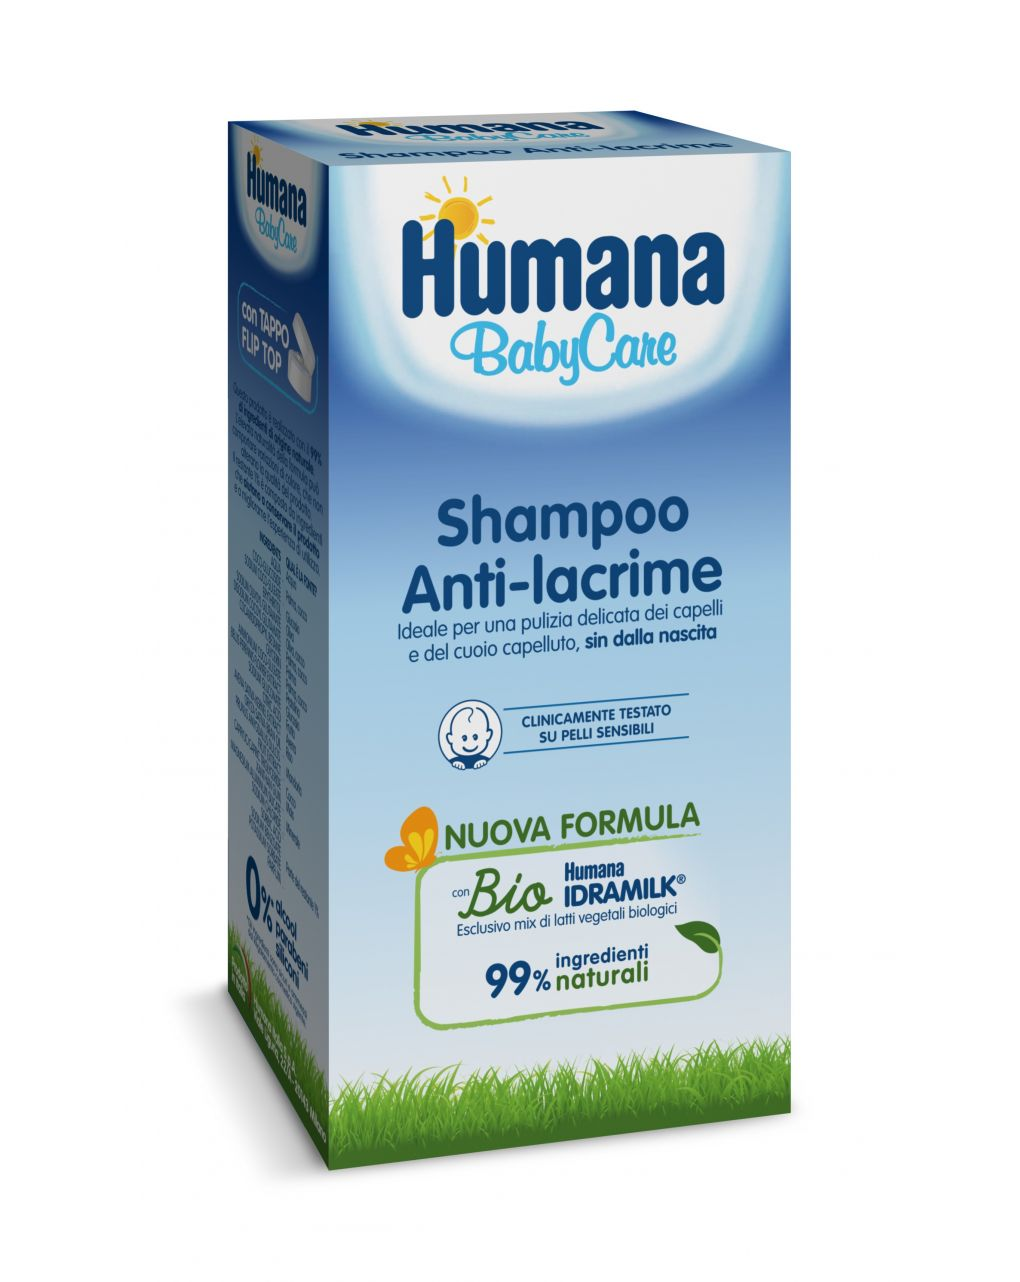 Shampoo anti-lacrime 200 ml - Humana